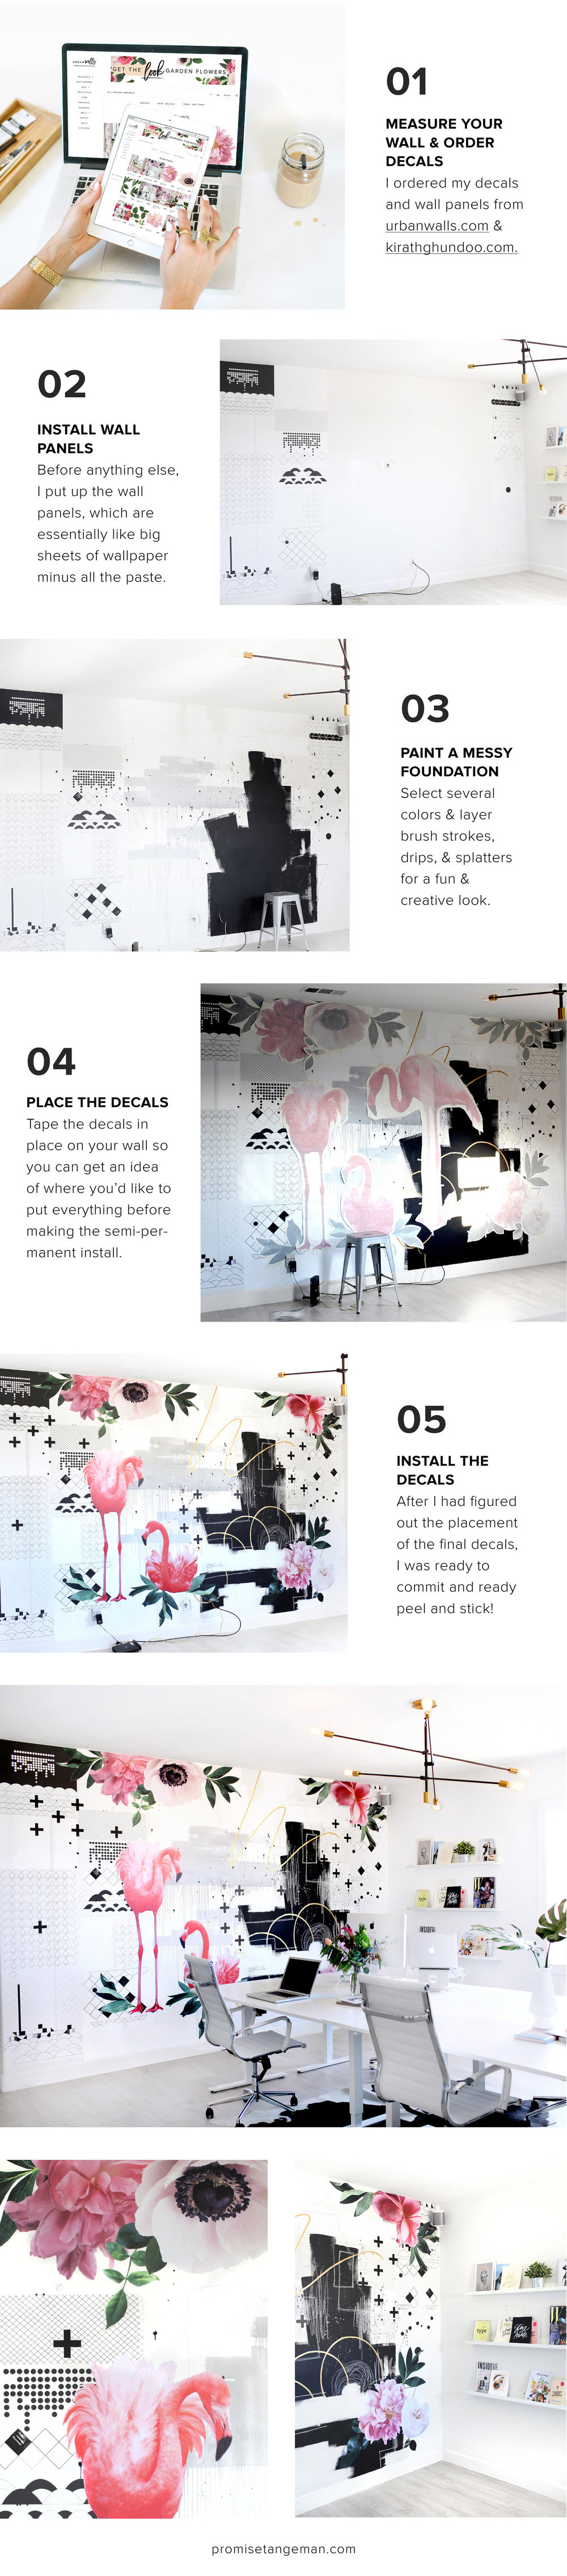 how+to+create+a+mixed+media+mural+by+Promise+Tangeman.jpg